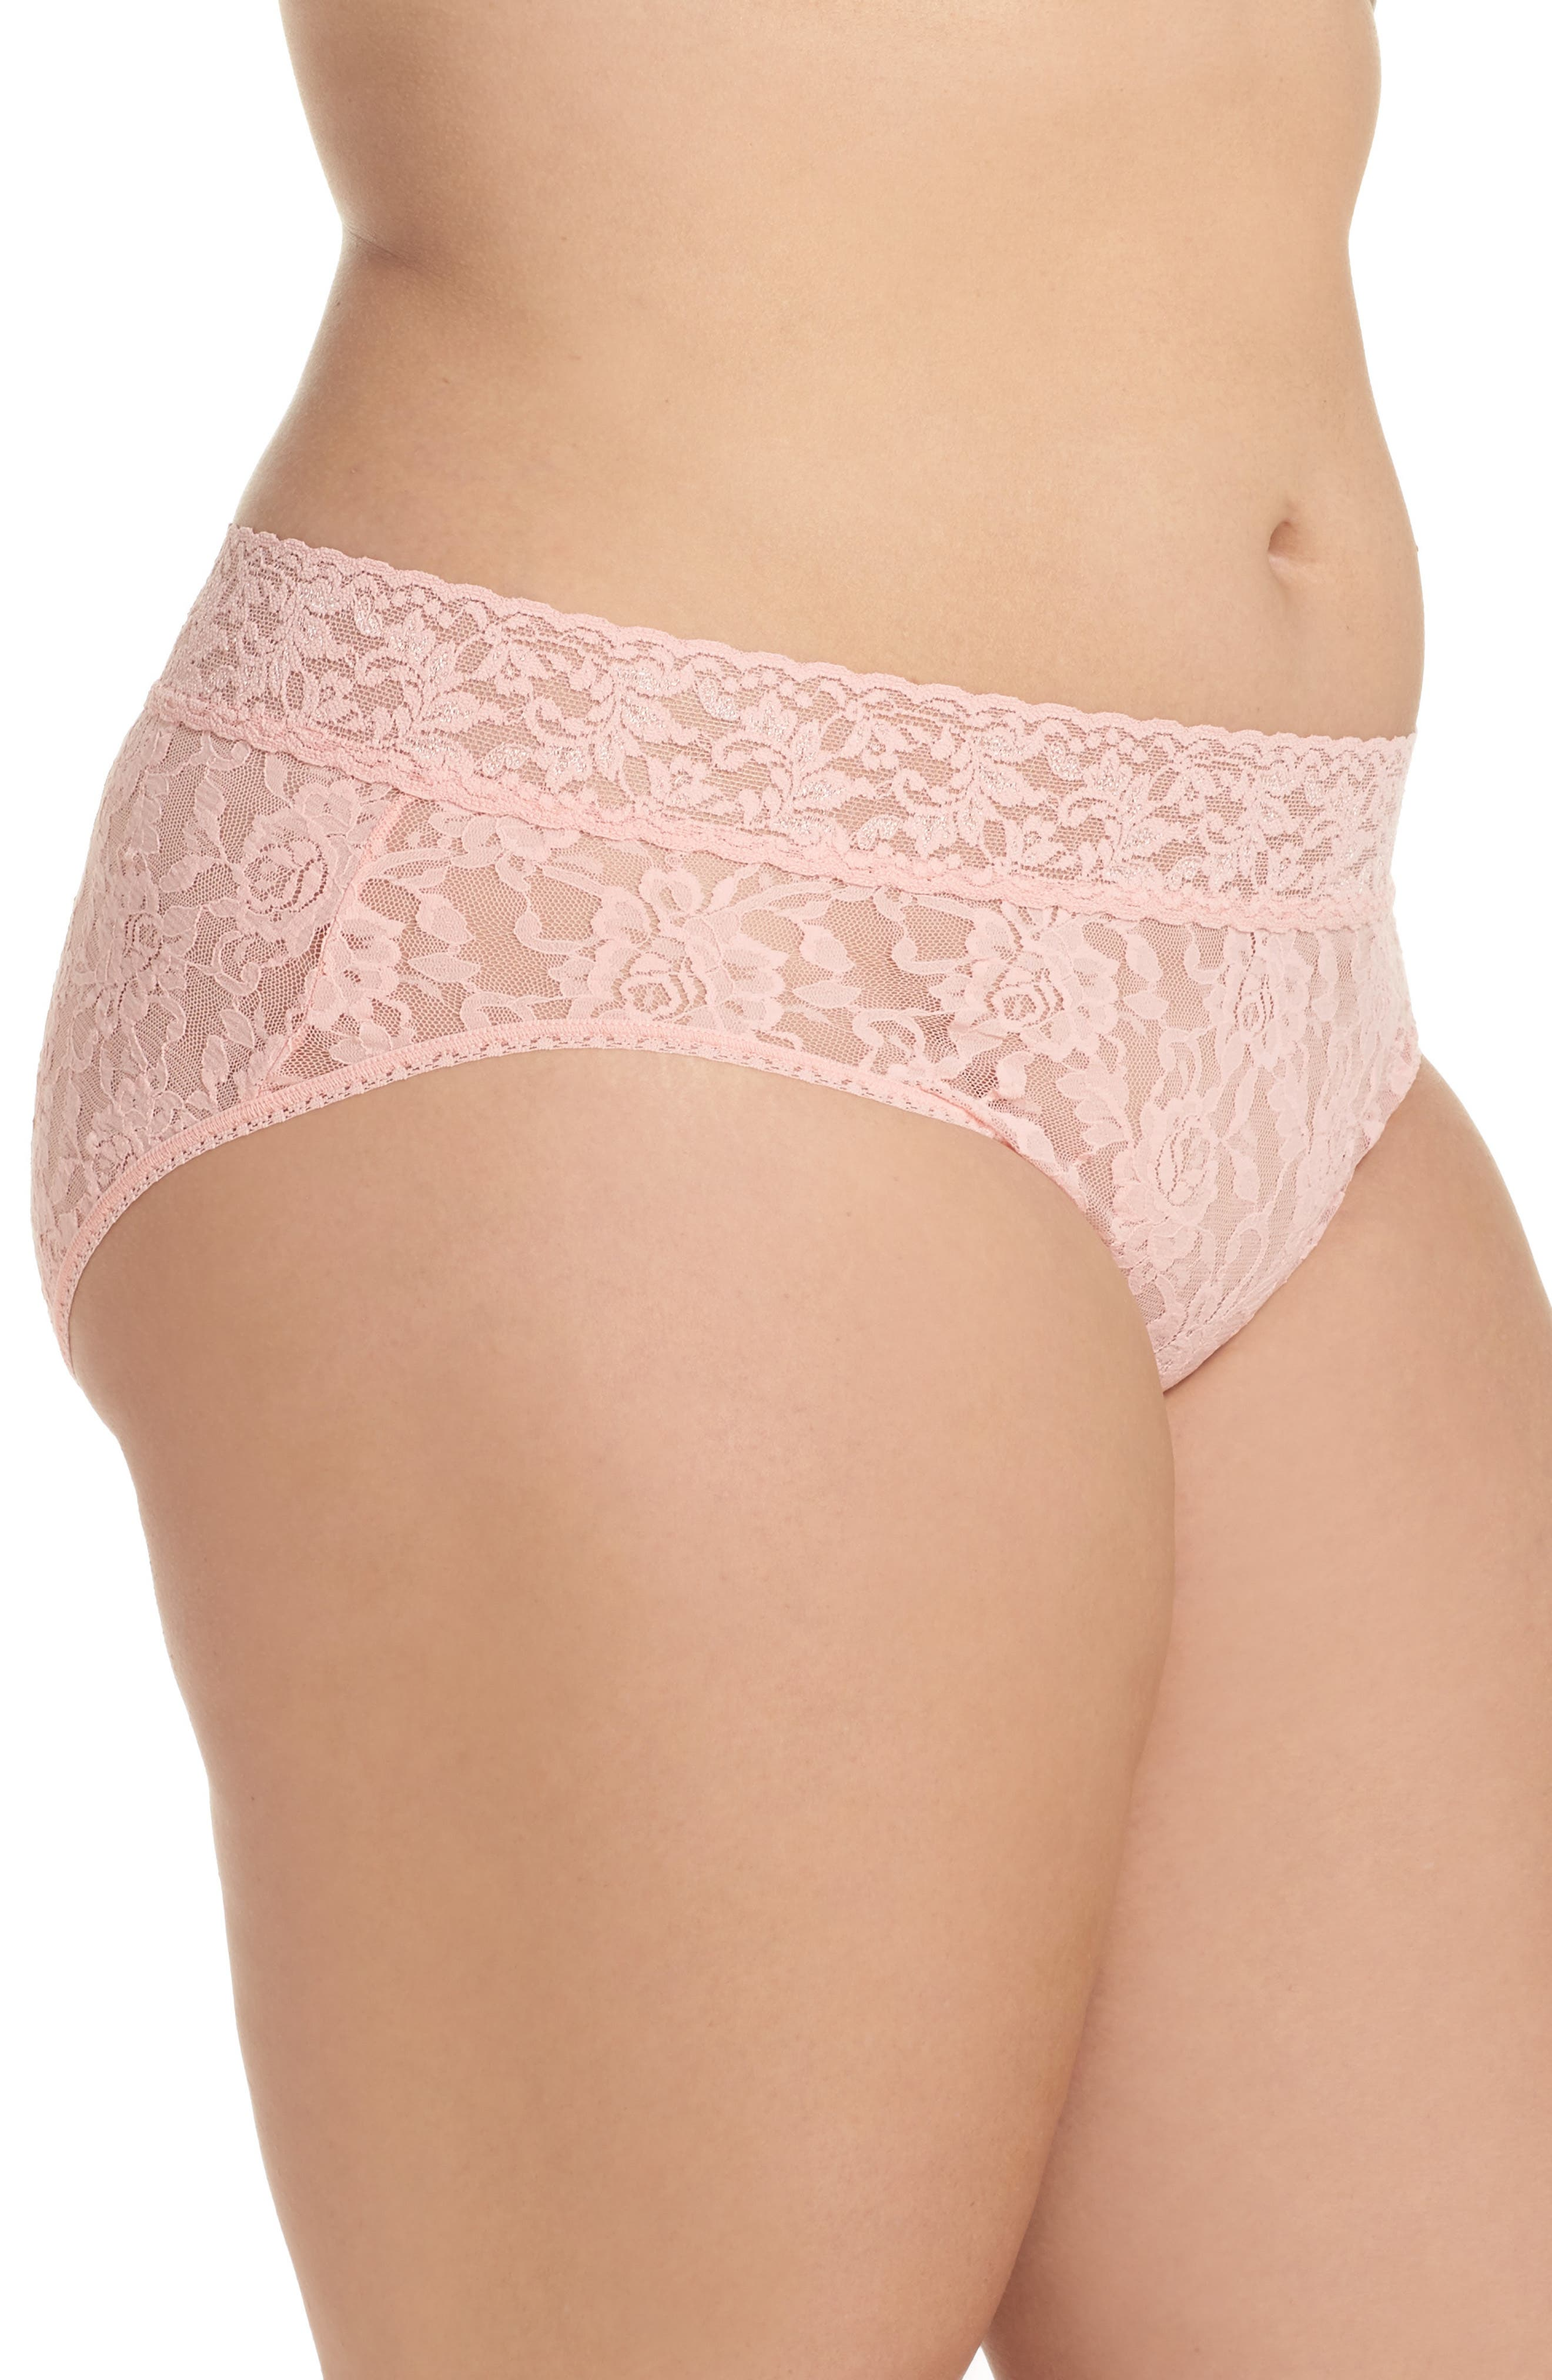 Alternate Image 3  - Hanky Panky French Briefs (Plus Size)